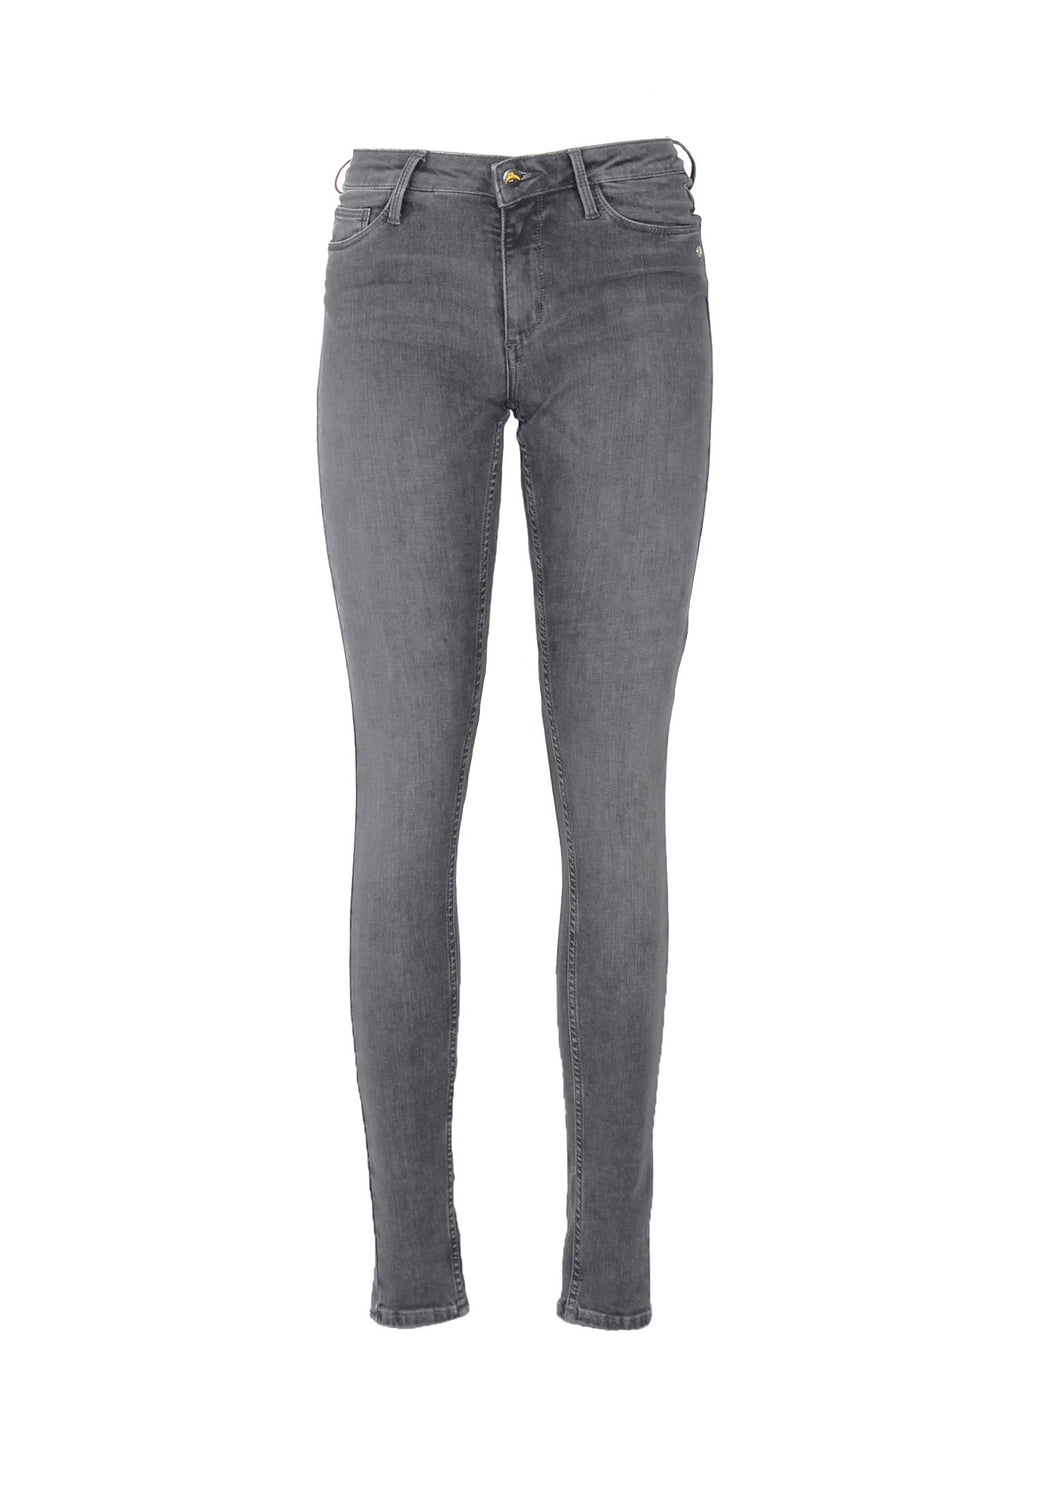 CODY // Organic Flex Super Skinny Mid Waist Jeans in Light Grey - Monkee Genes Organic Jeans Denim - Women's Silhouette Monkee Genes Official  Monkee Genes Official